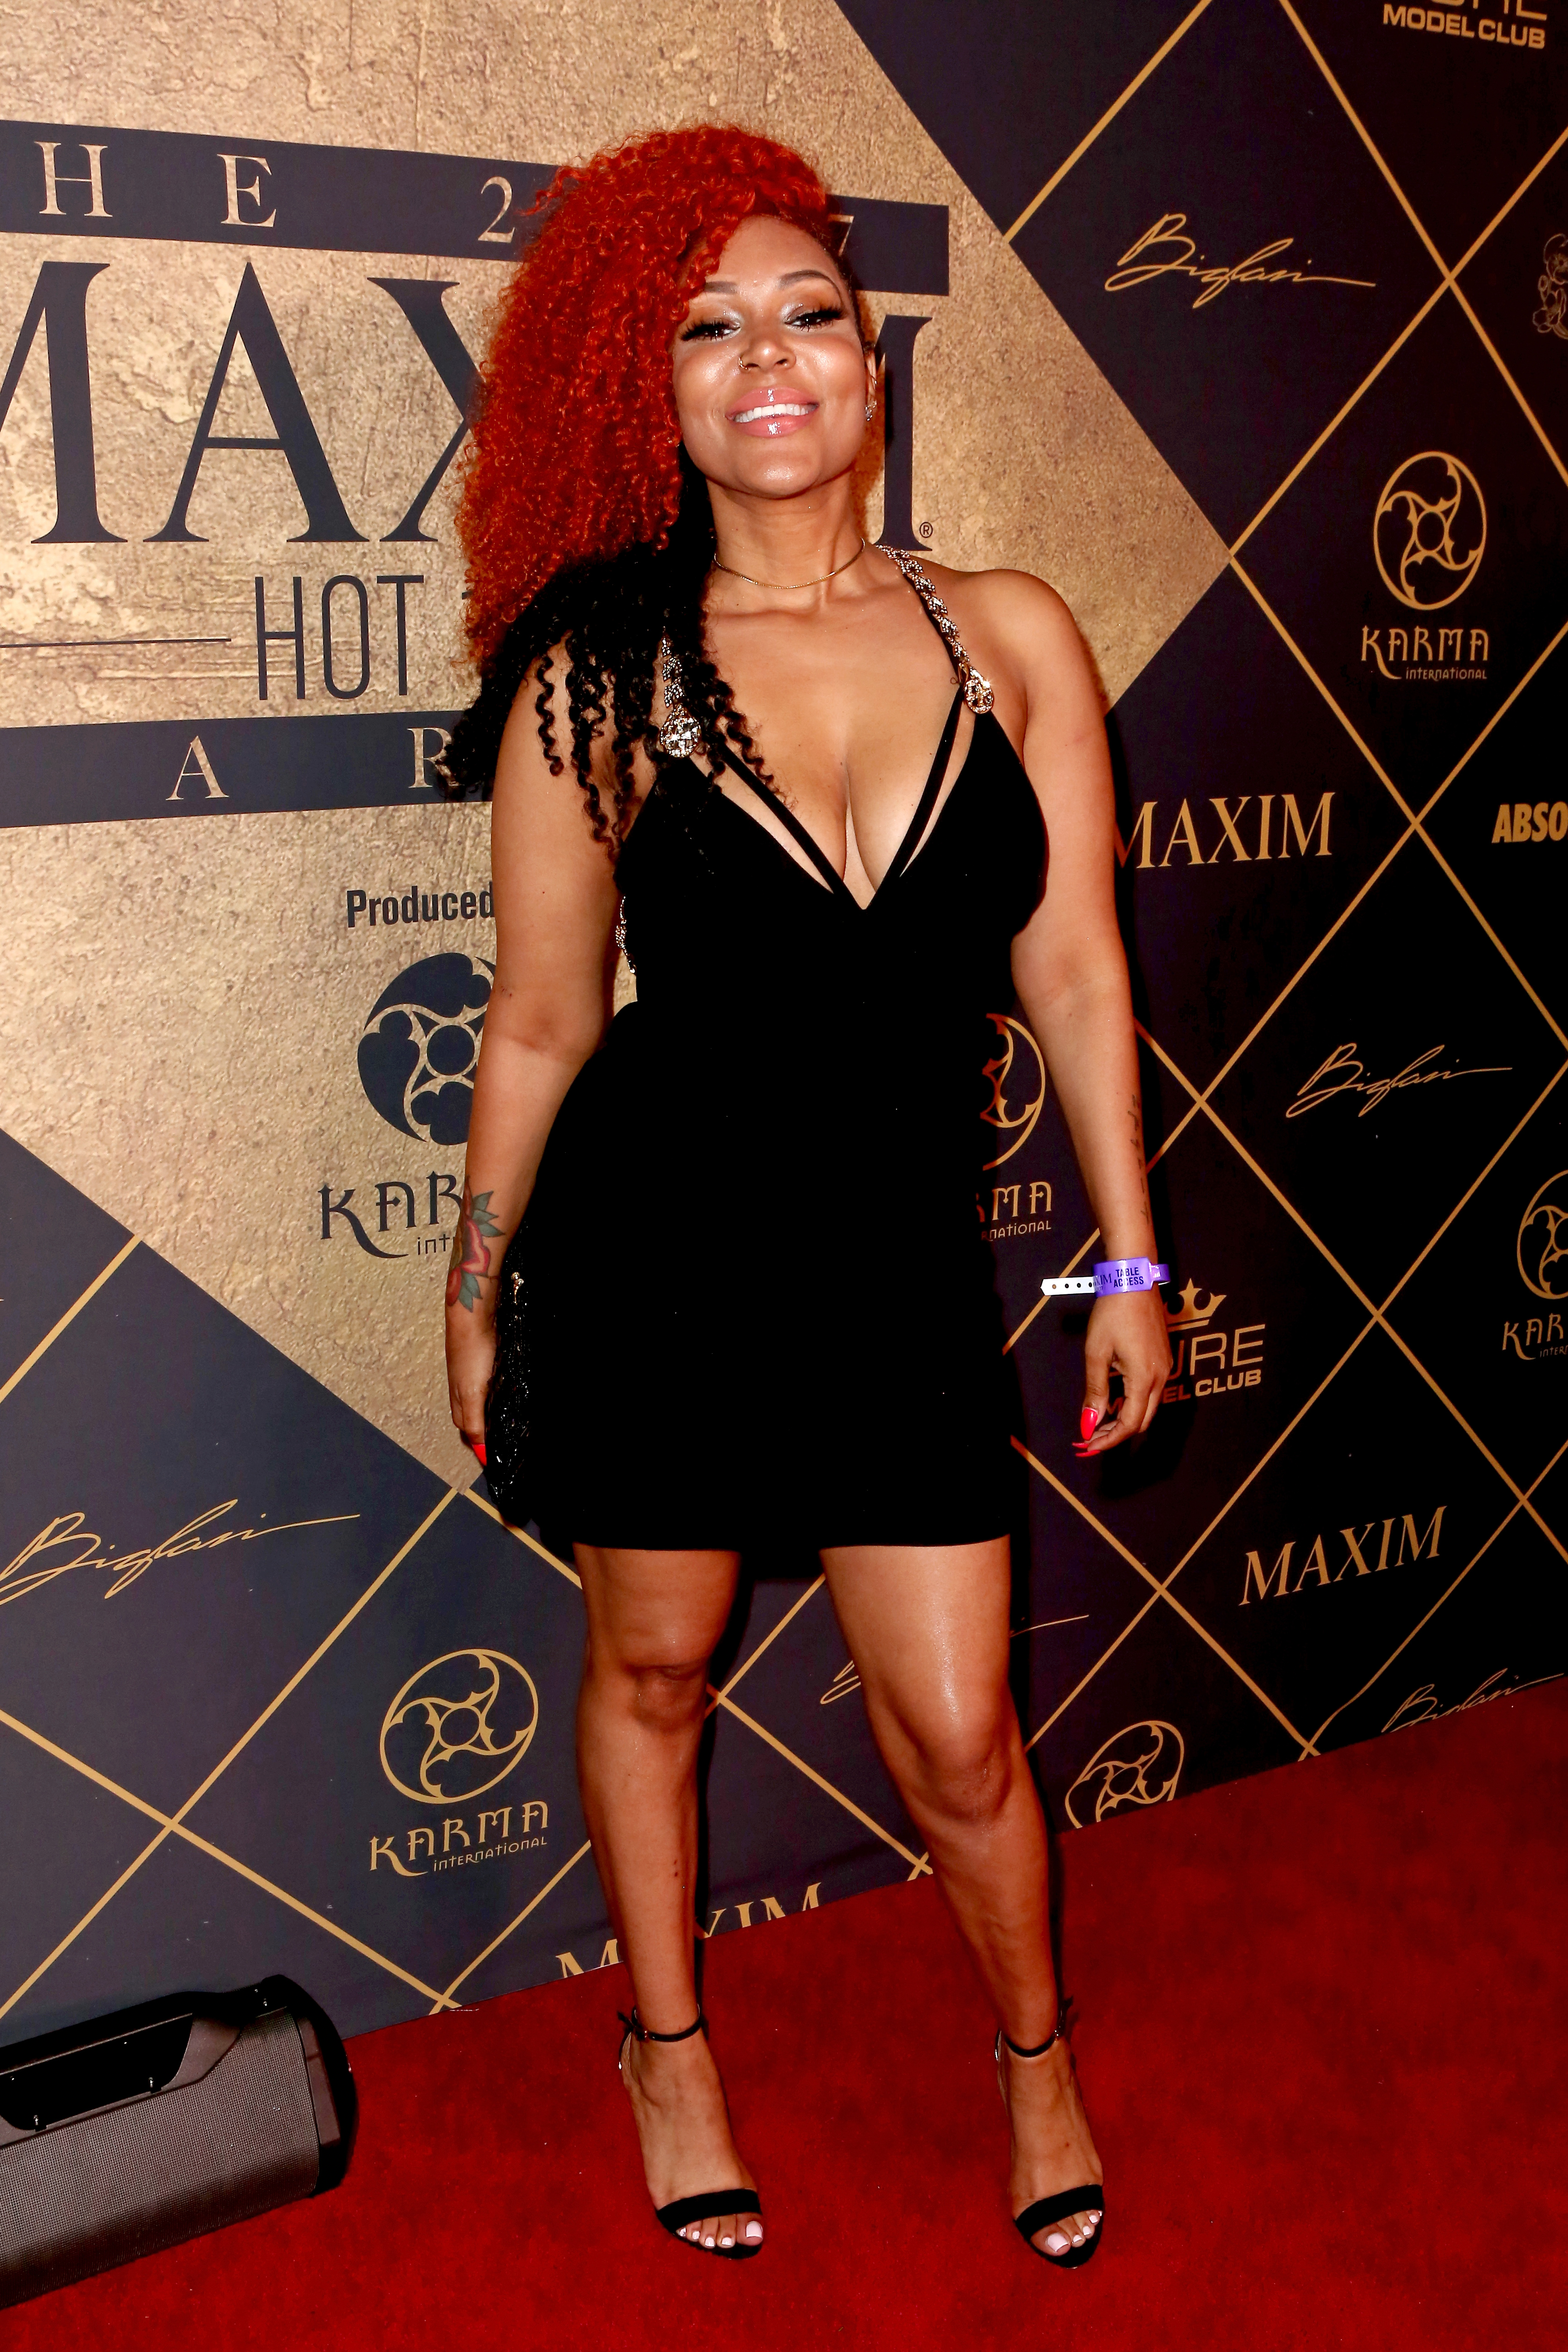 The 2017 MAXIM Hot 100 Party